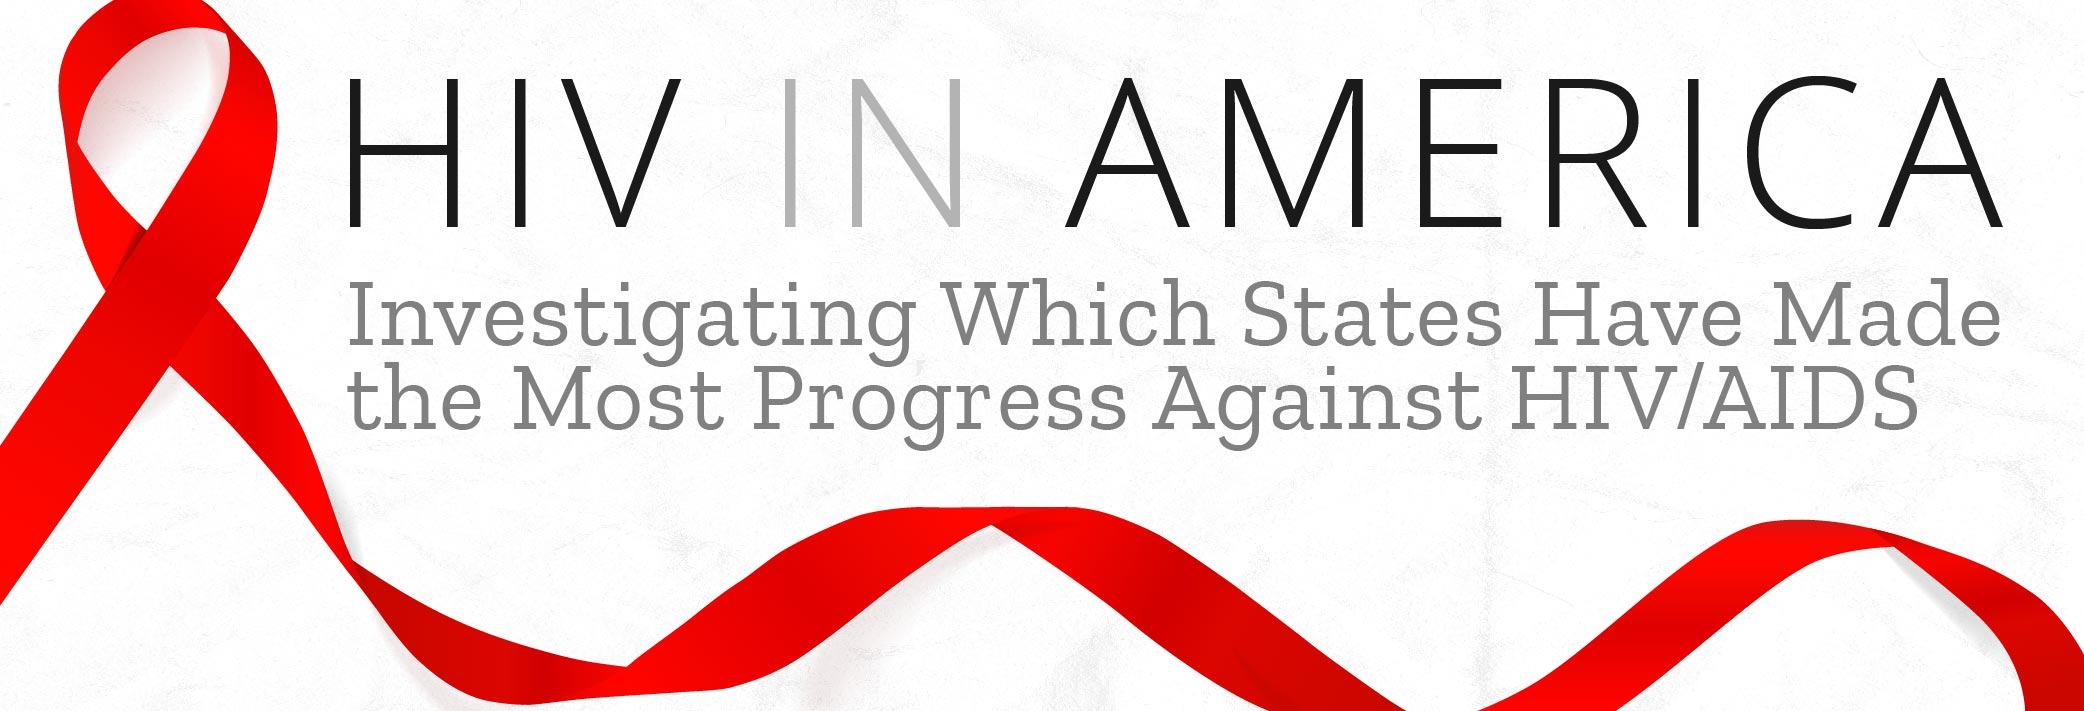 Investigating Which States Have Made the Most Progress Against HIV/AIDS